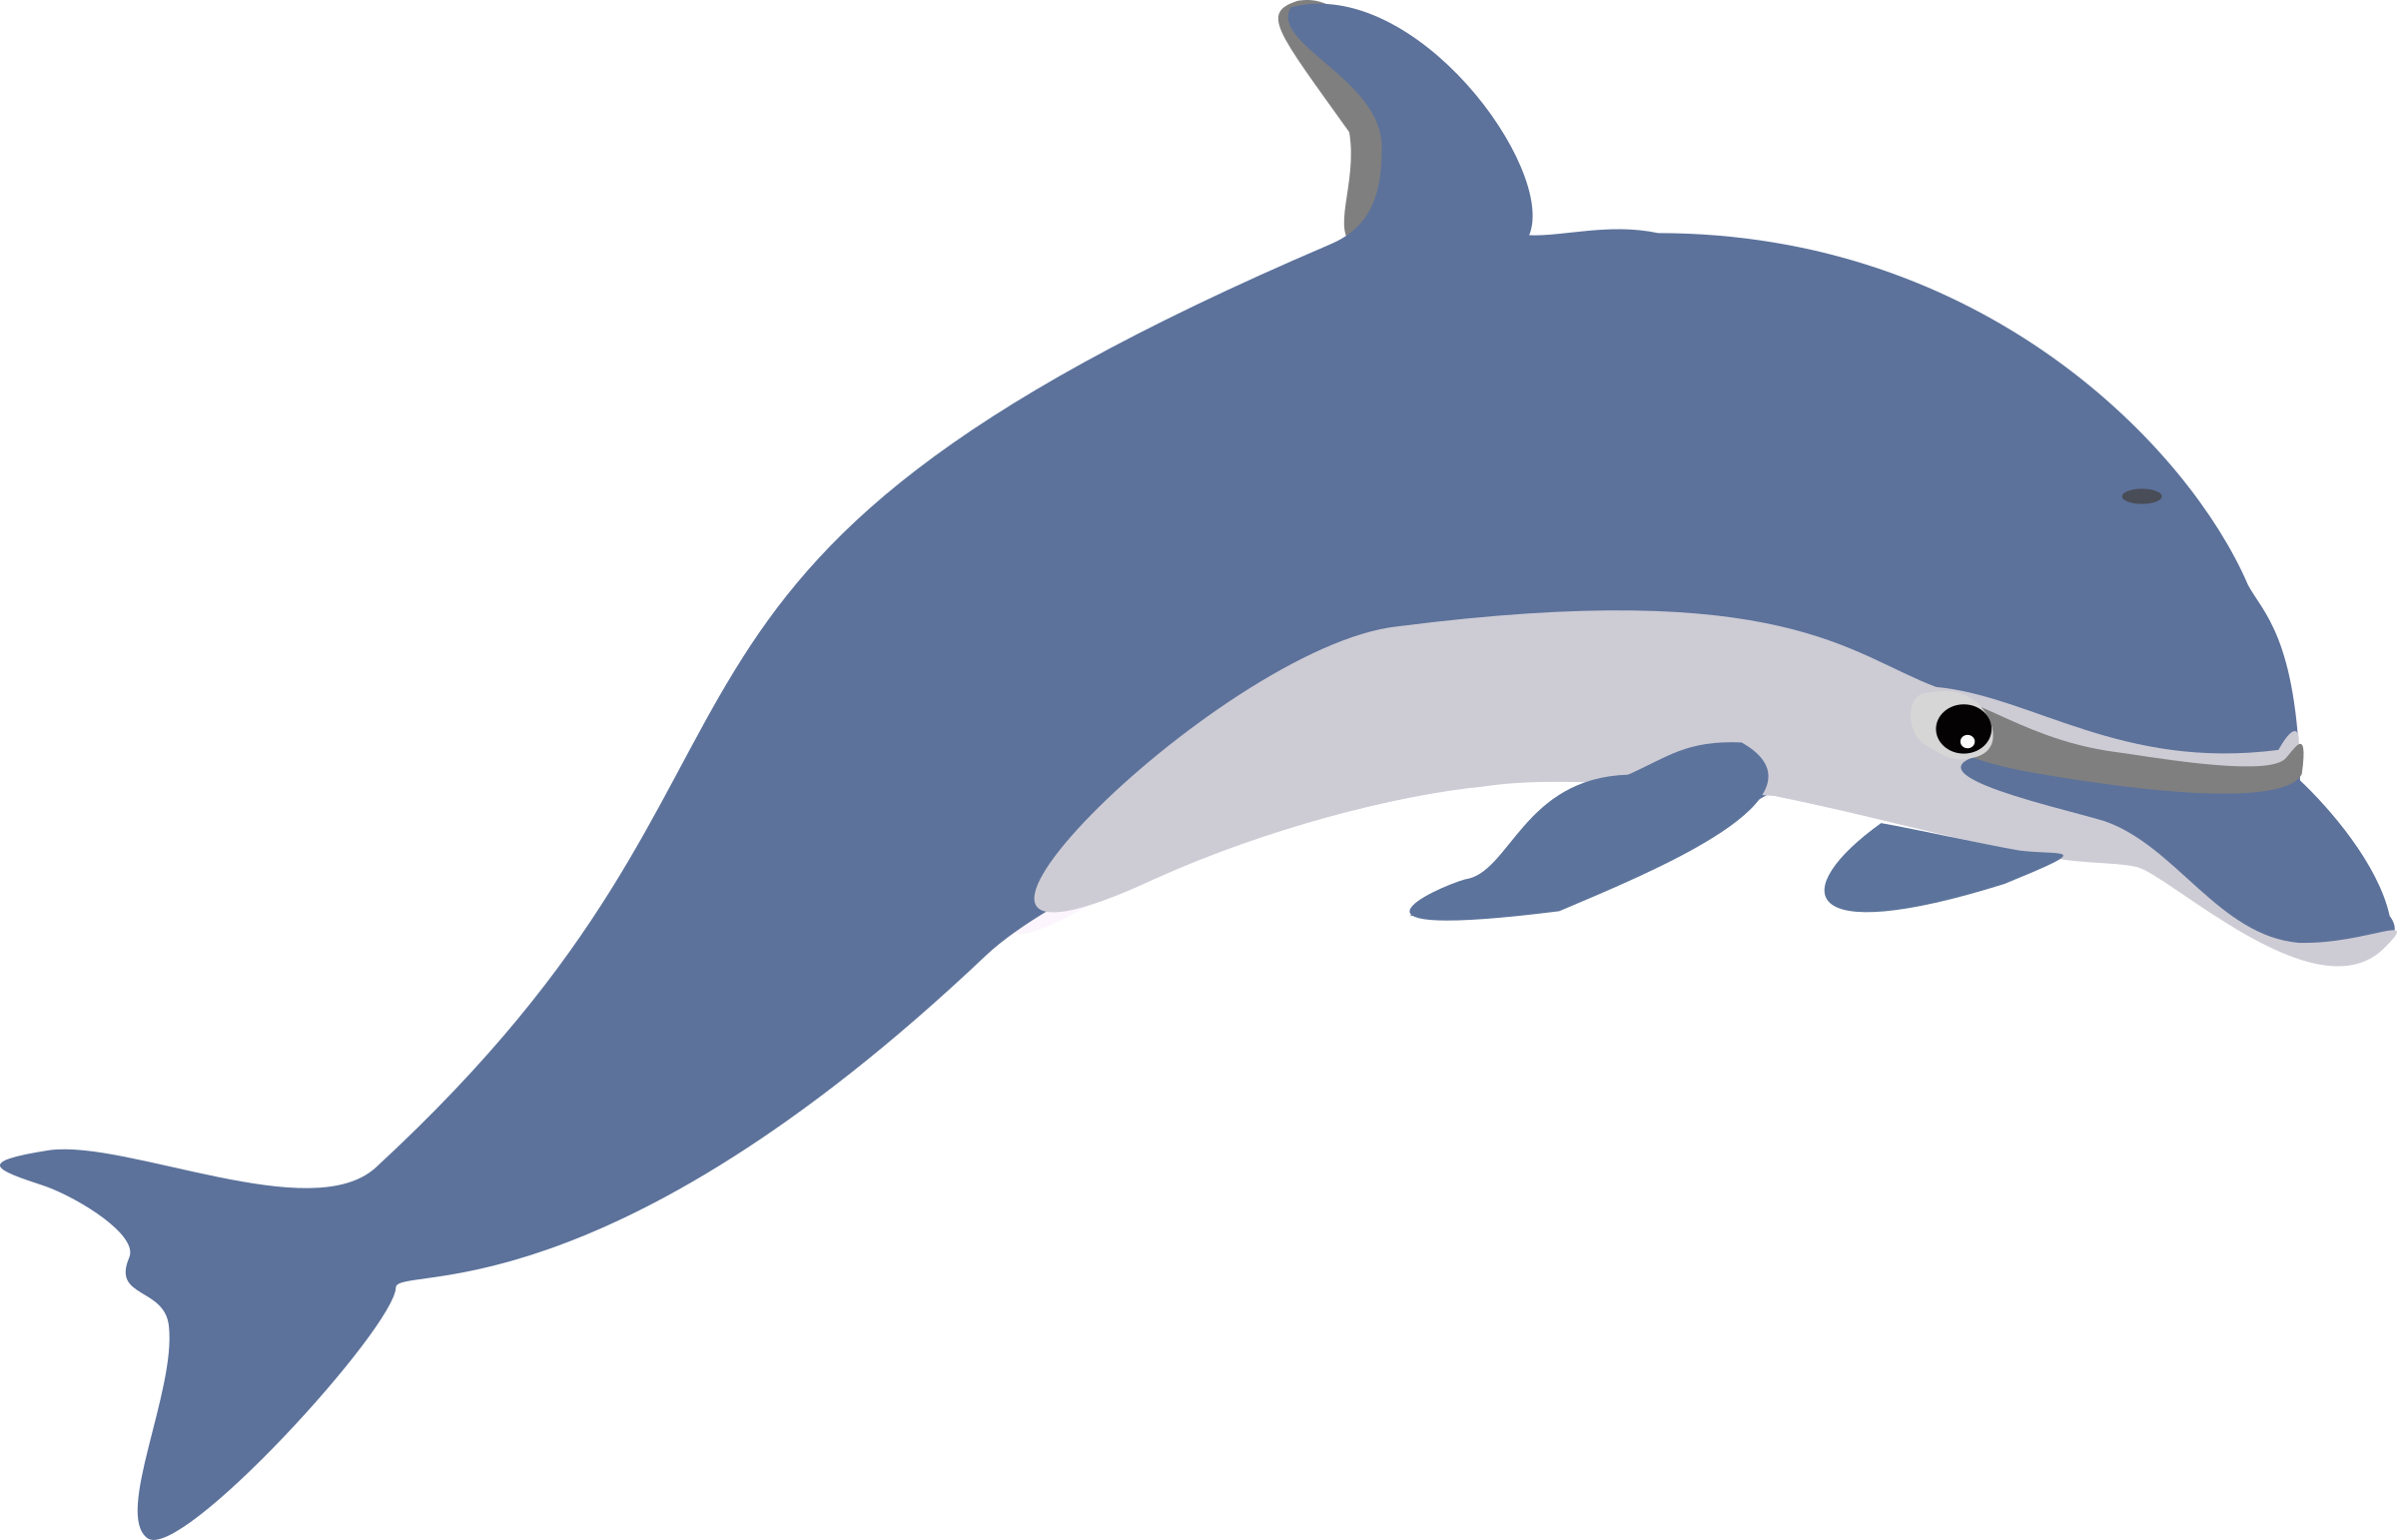 Dolphins clipart carton. Reading pencil and in